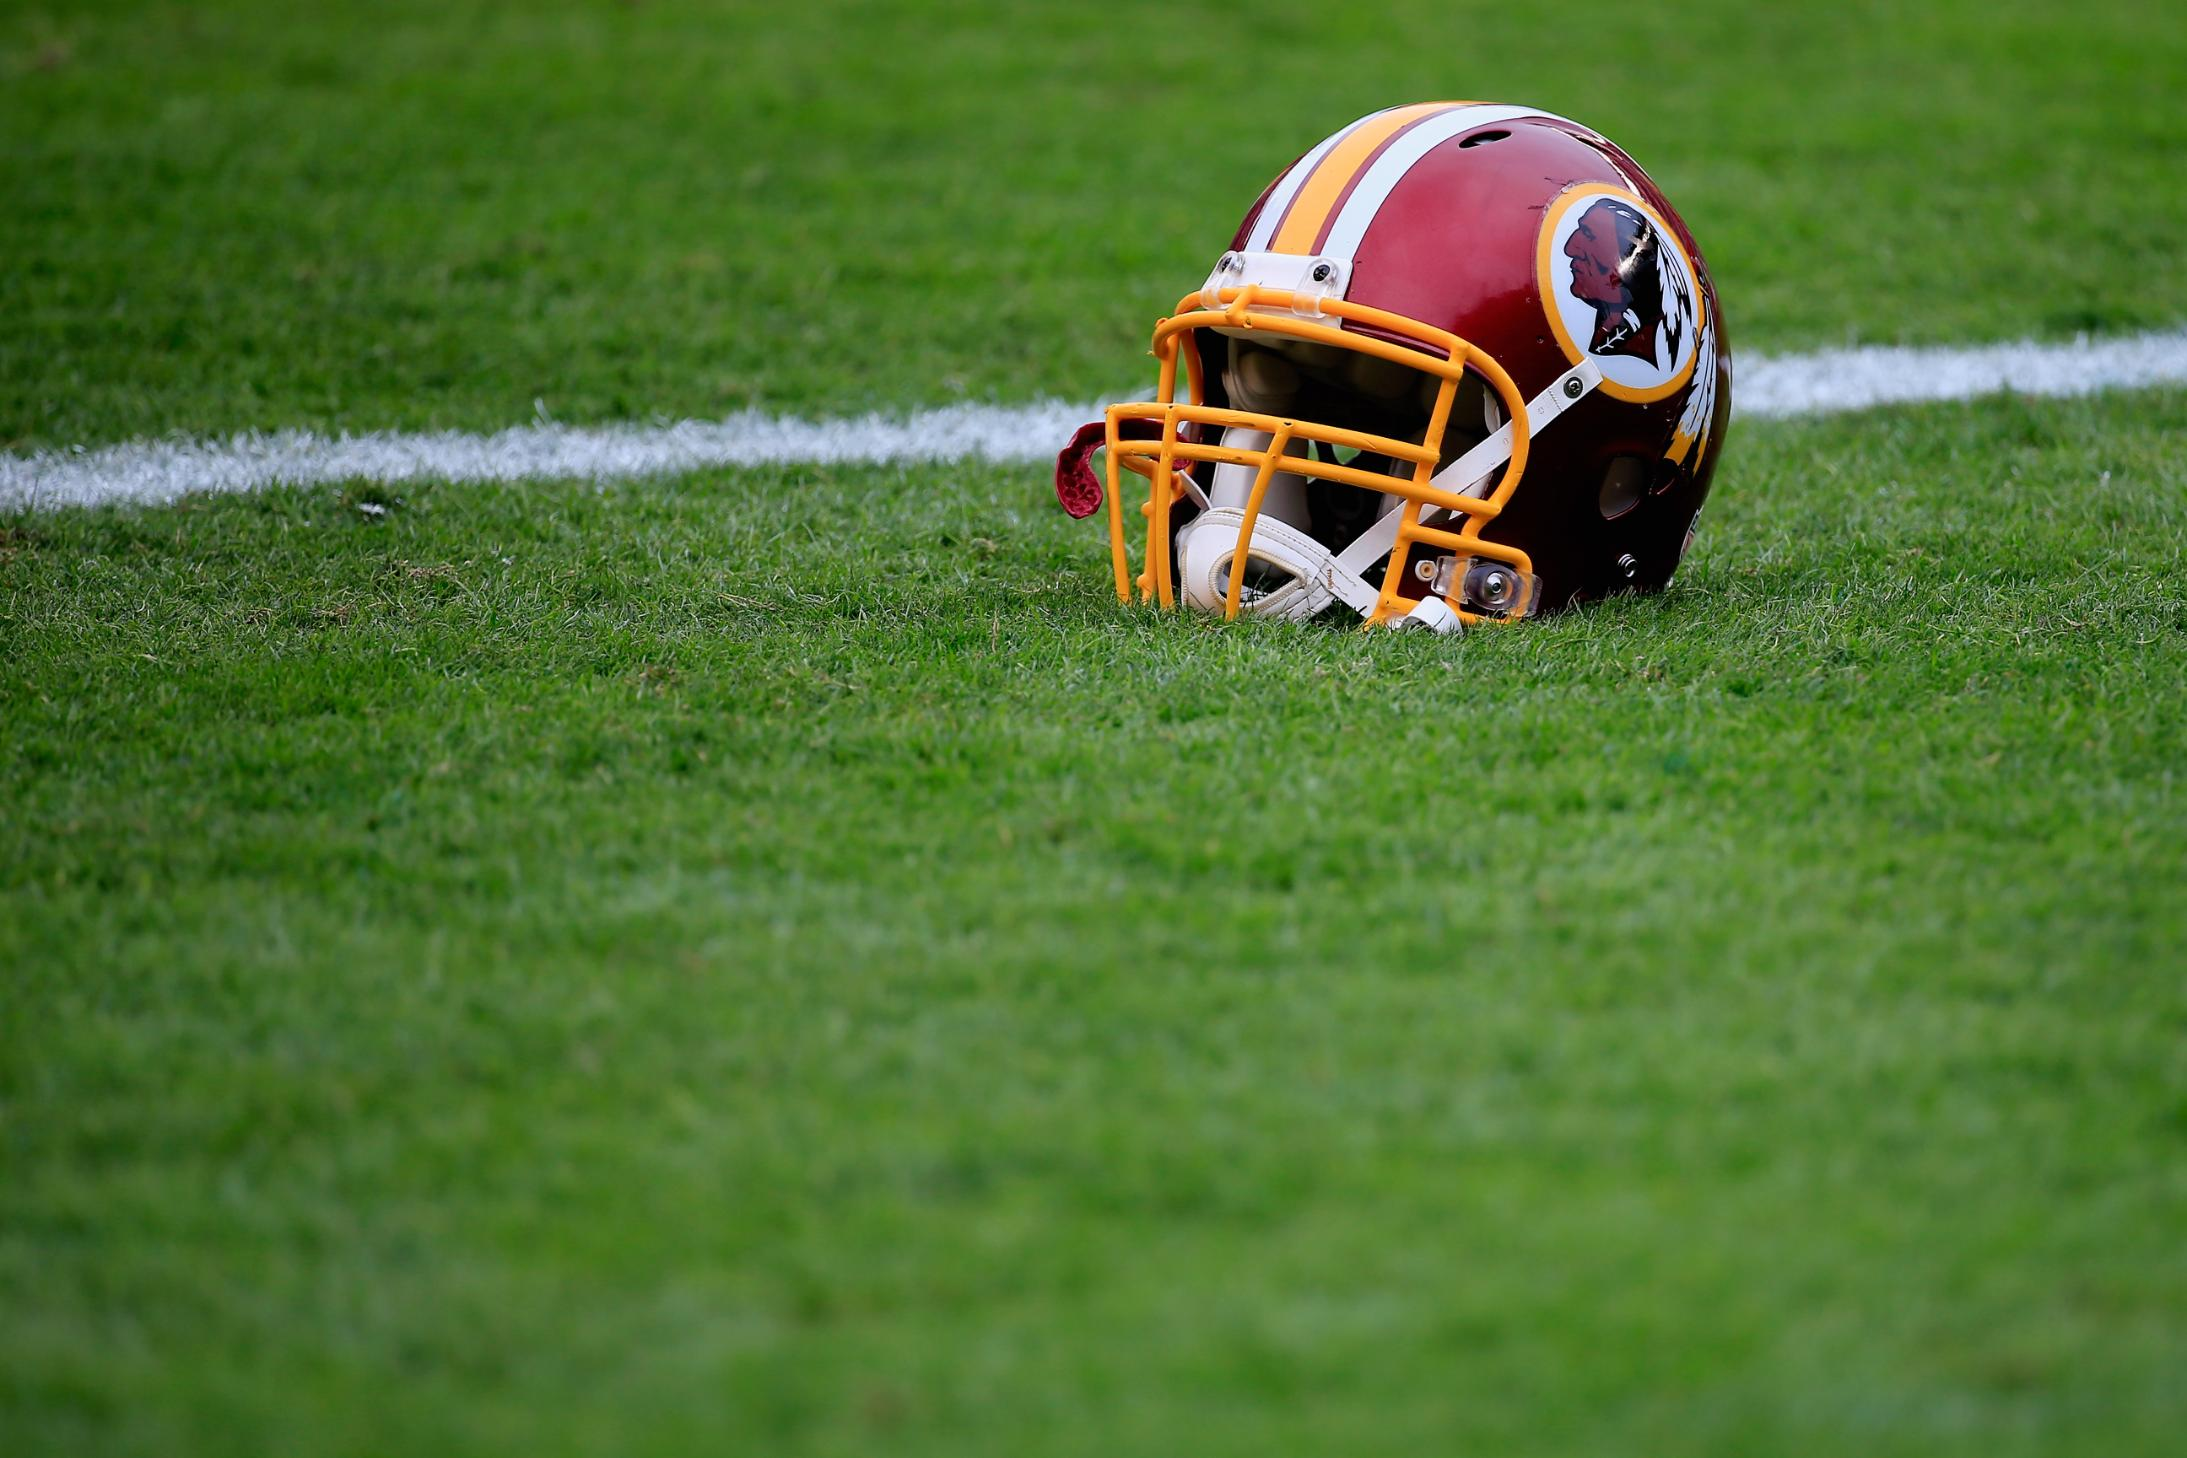 If they're going to rename the Washington Redskins, these are the likeliest contenders